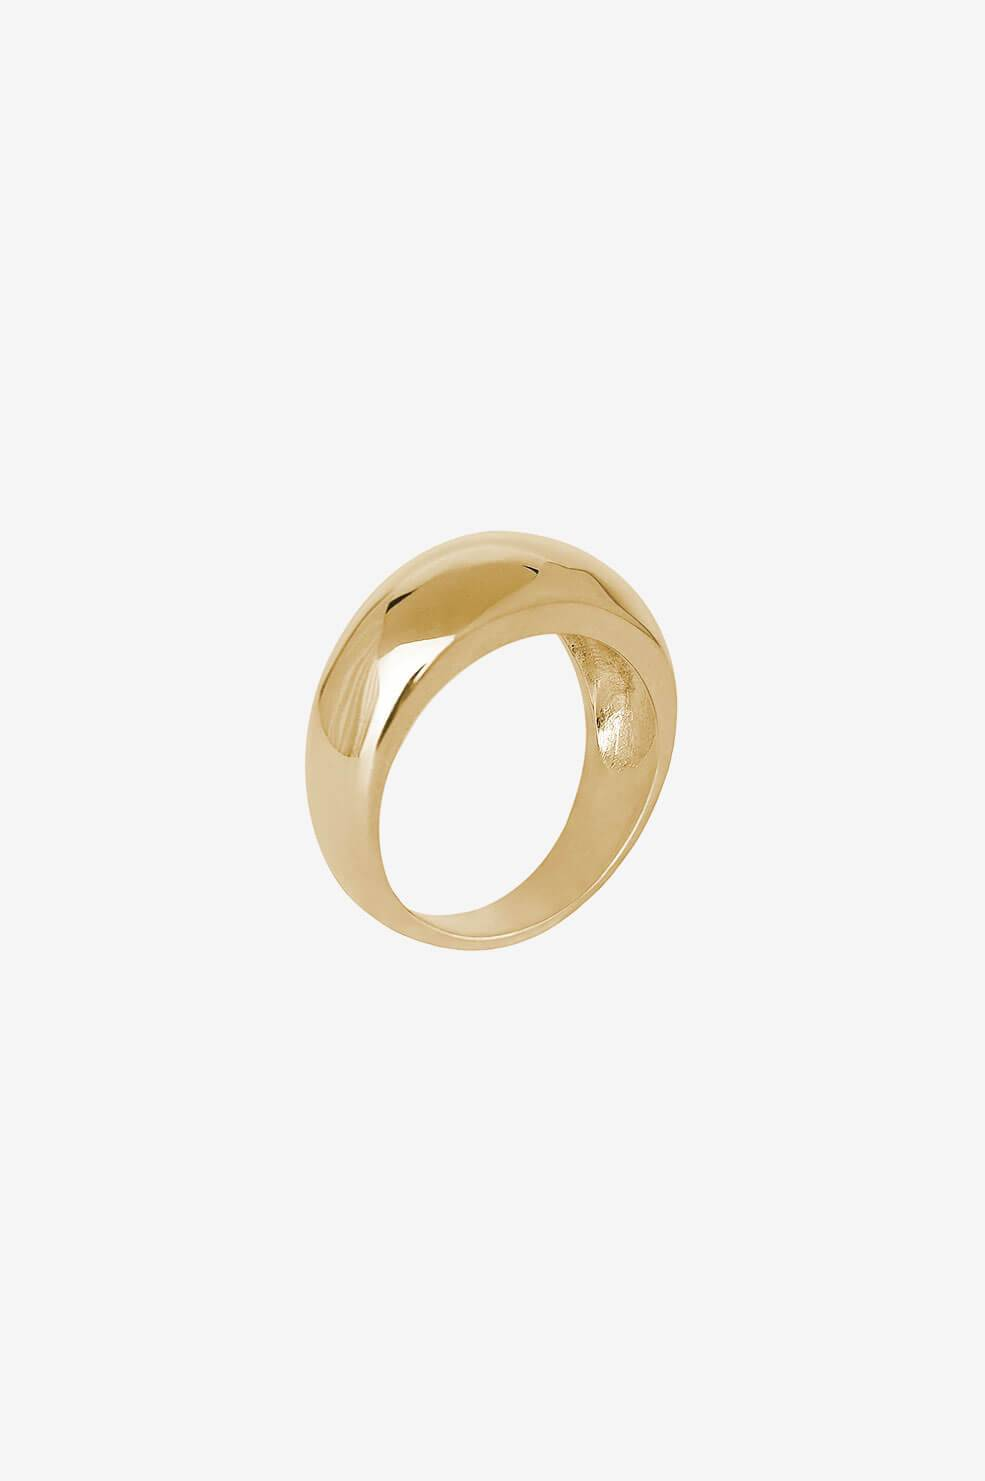 ANINE BING Dome Ring in Gold  - Gold - Size: 6